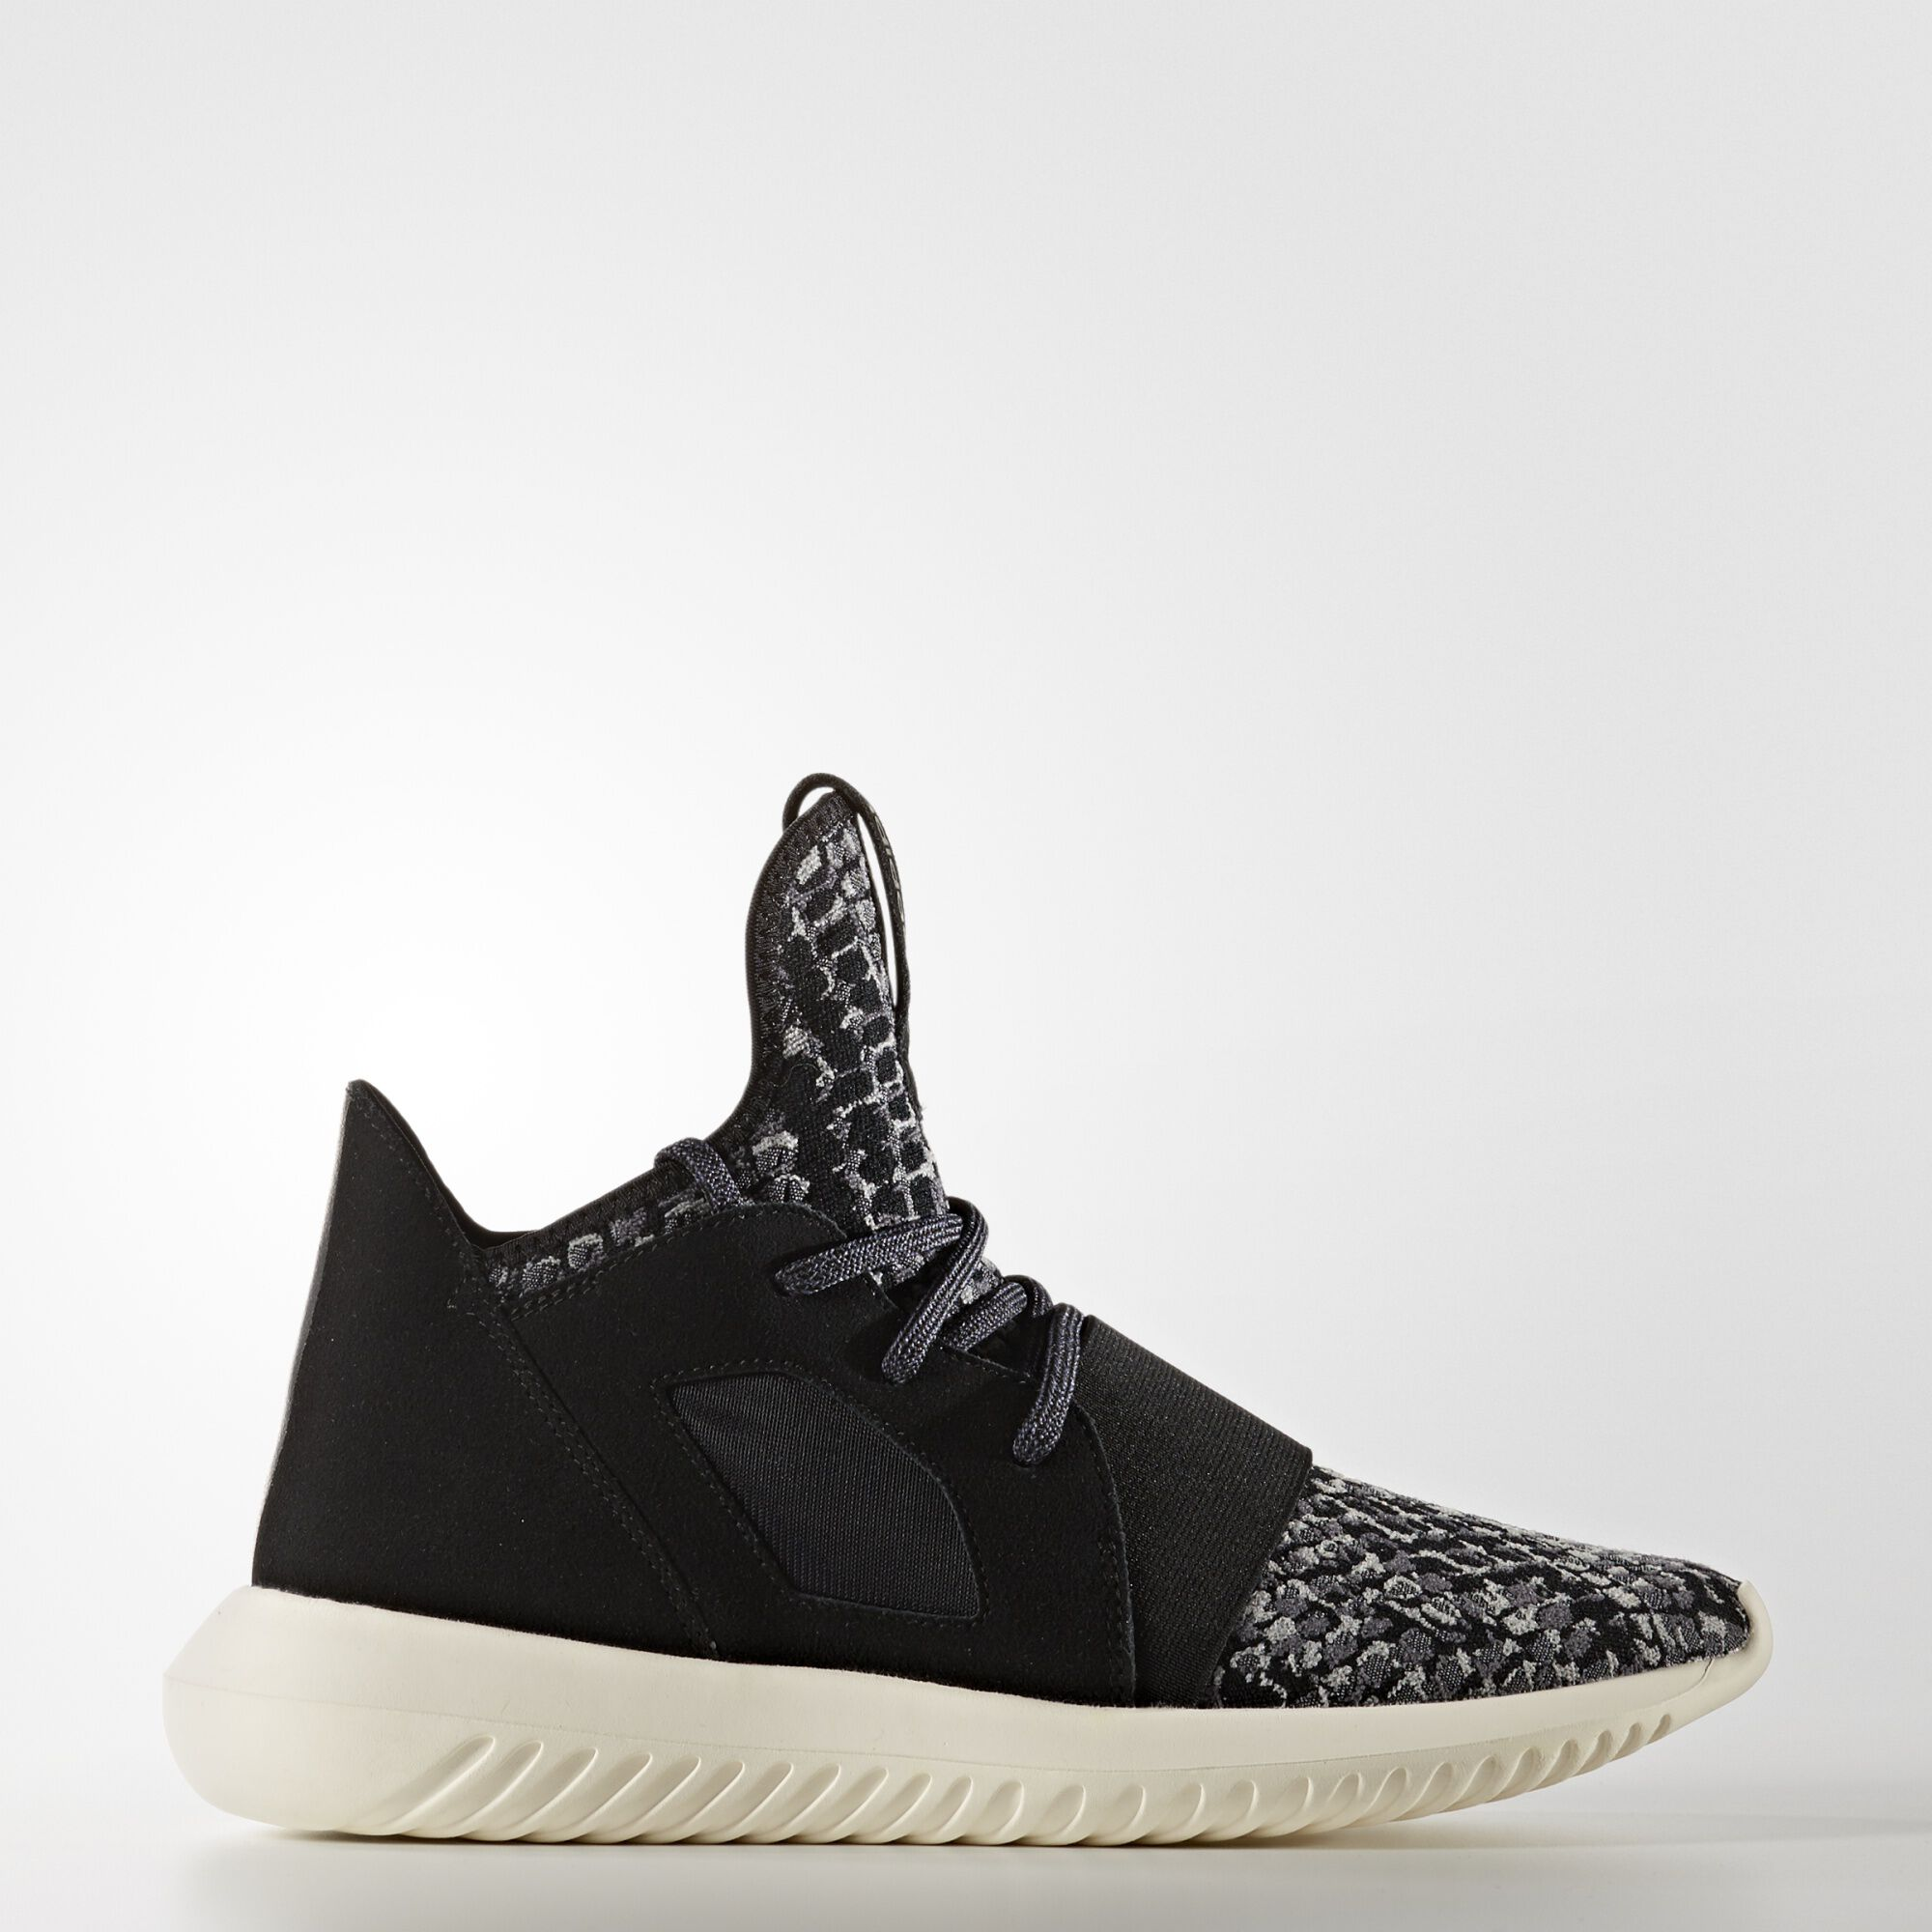 This Version Of The adidas Tubular Defiant Comes With Stars On The